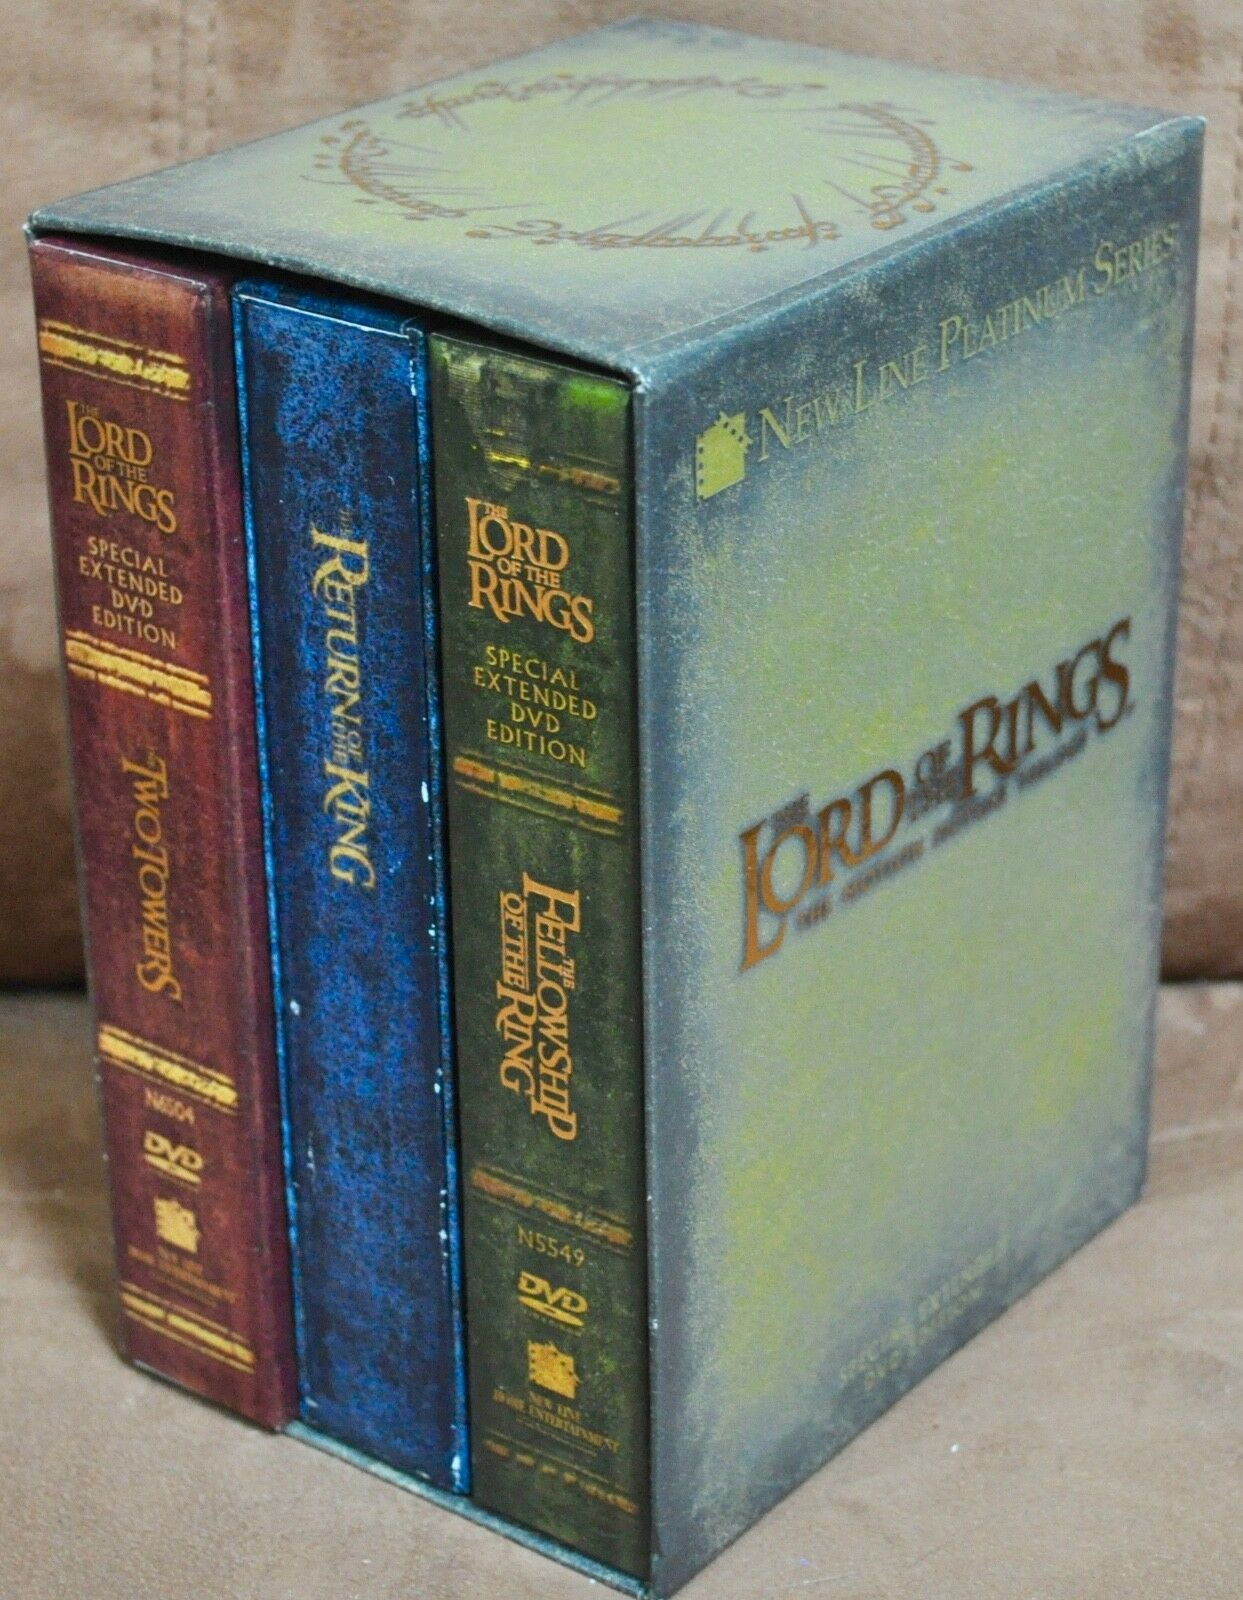 The Lord of the Rings: The Motion Picture Trilogy Special Extended Edition